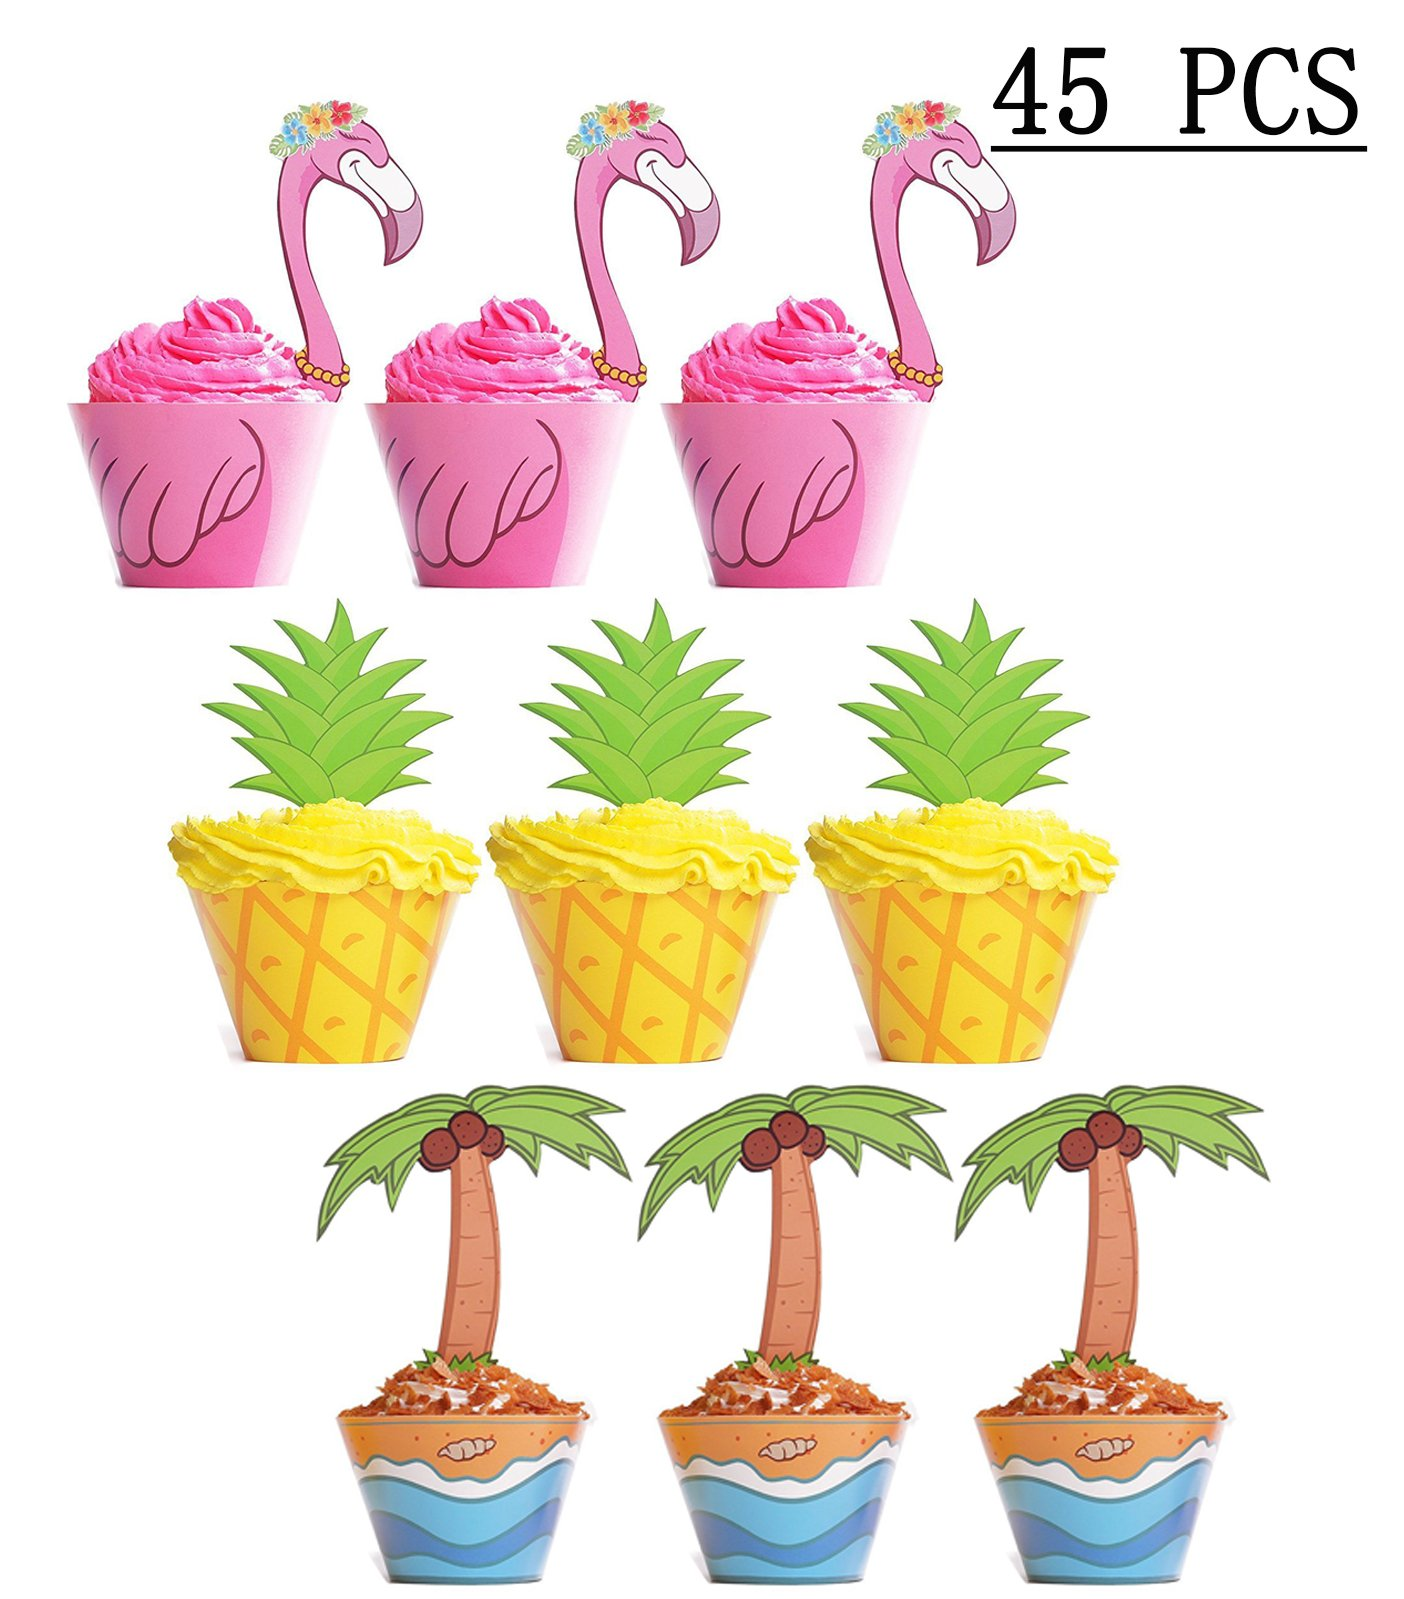 Moon Boat Flamingo / Pineapple / Palm Cupcake Toppers Wrappers - Luau Tropical Hawaiian Pool Party Supplies Cake Decorations